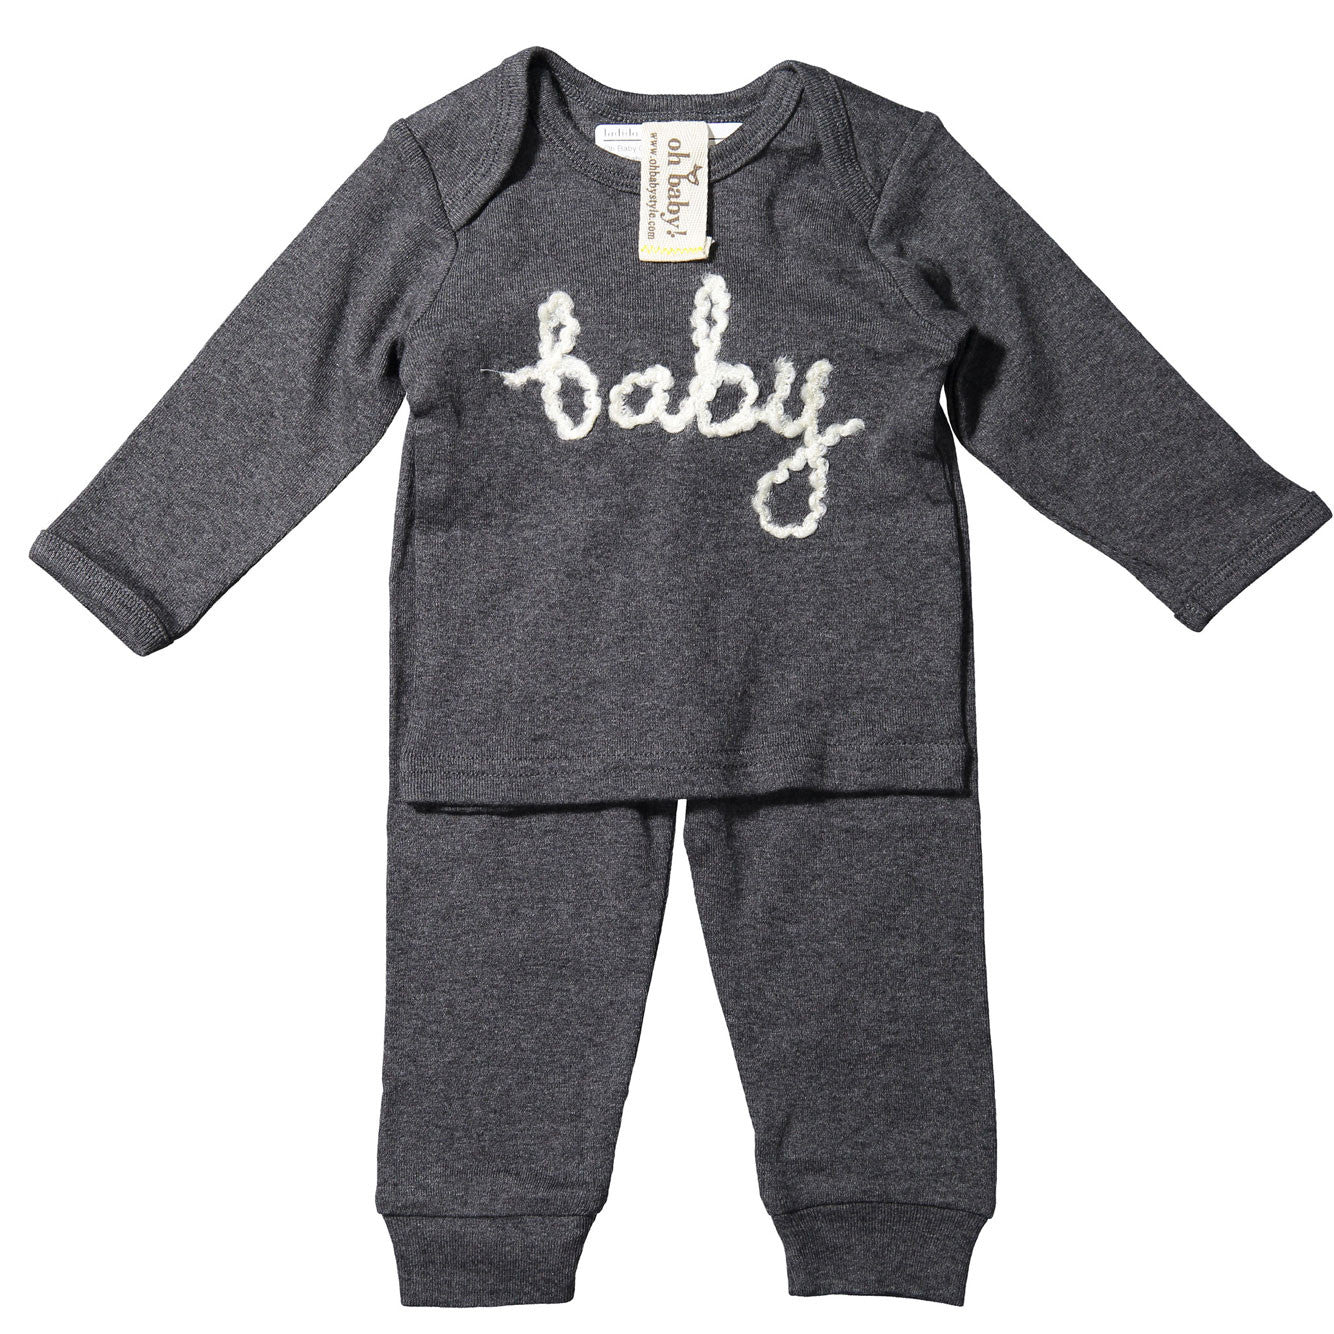 Oh Baby Charcoal Yarn Baby S - Ladida